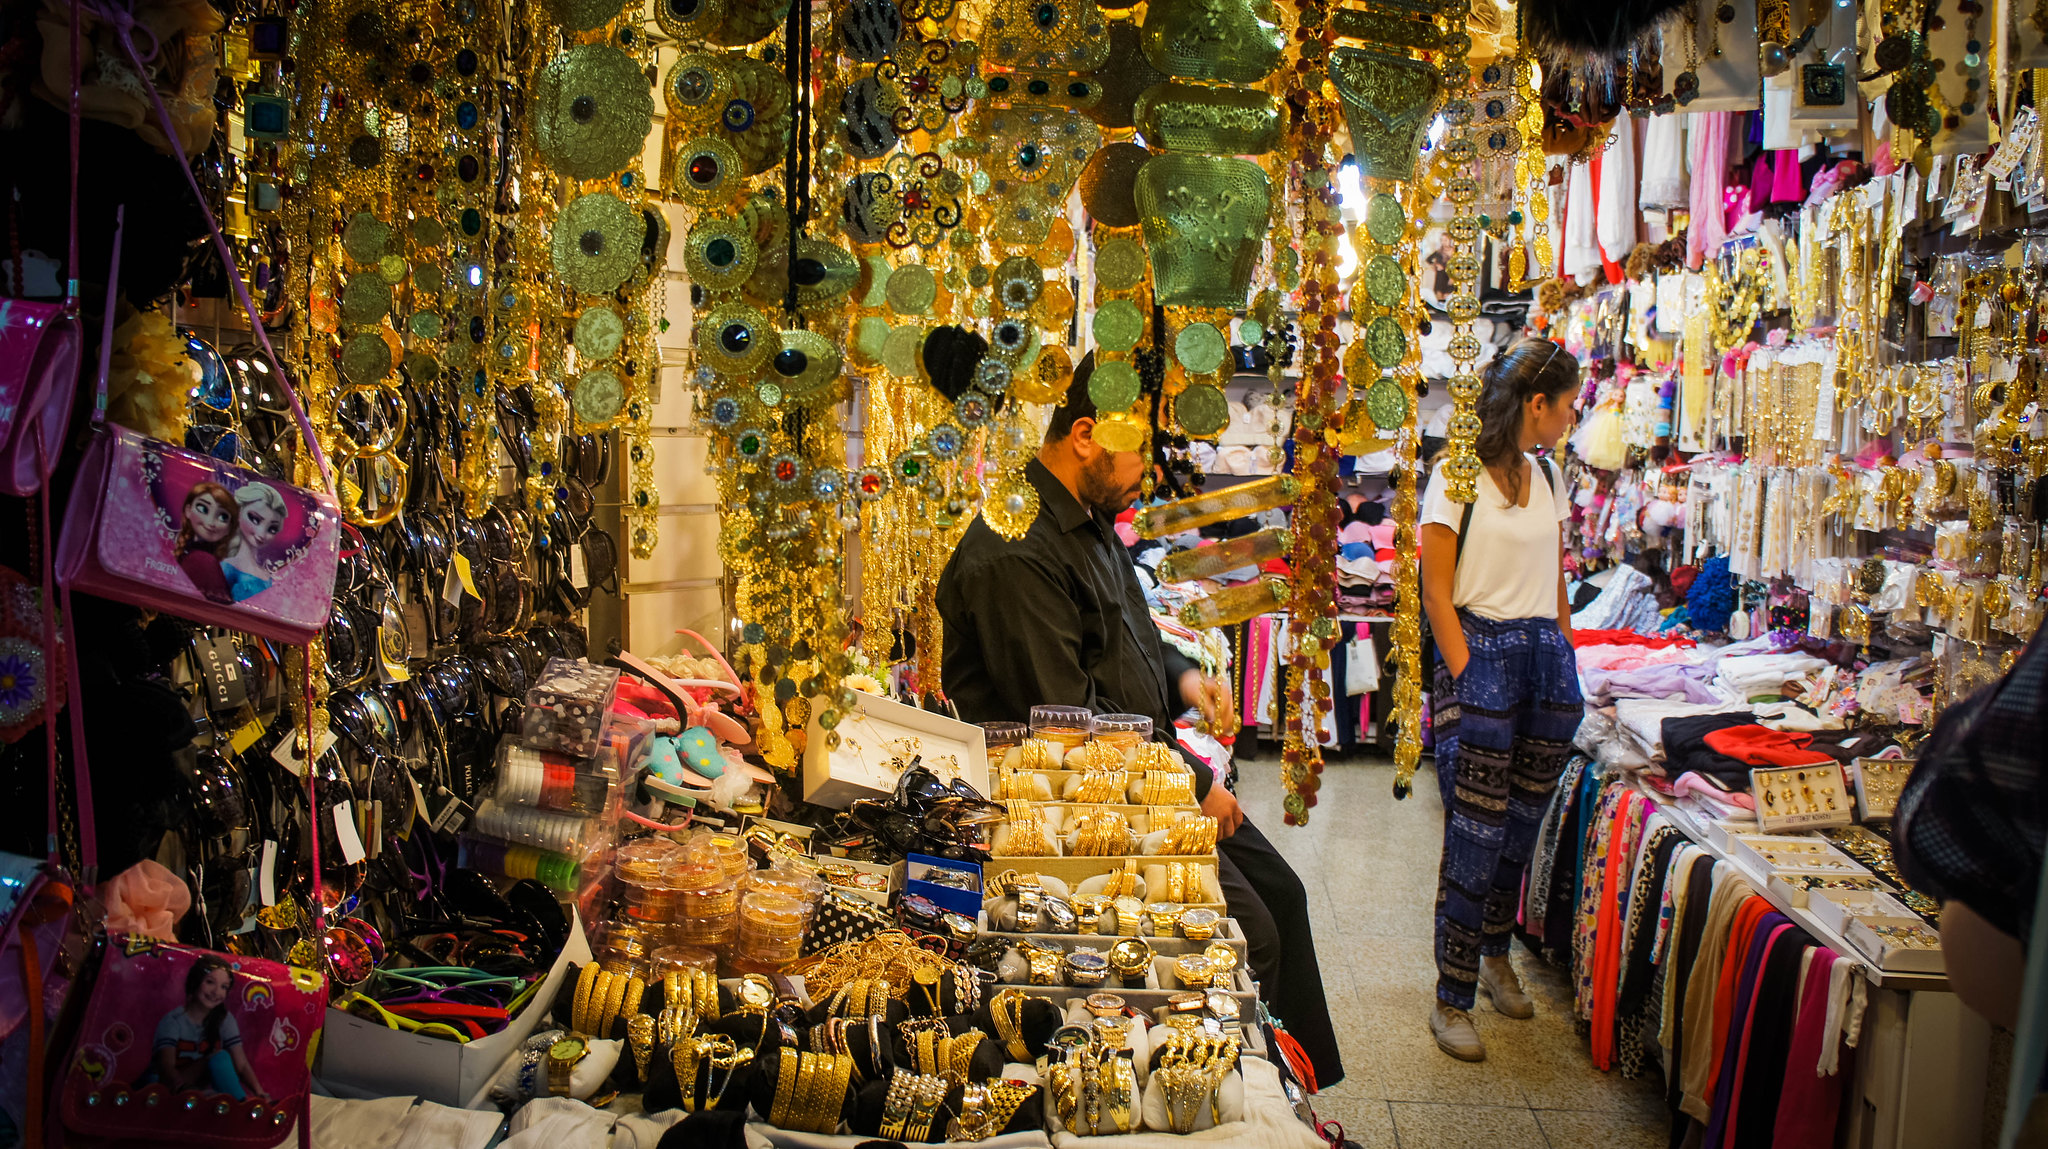 Jewellery in Langa bazaar